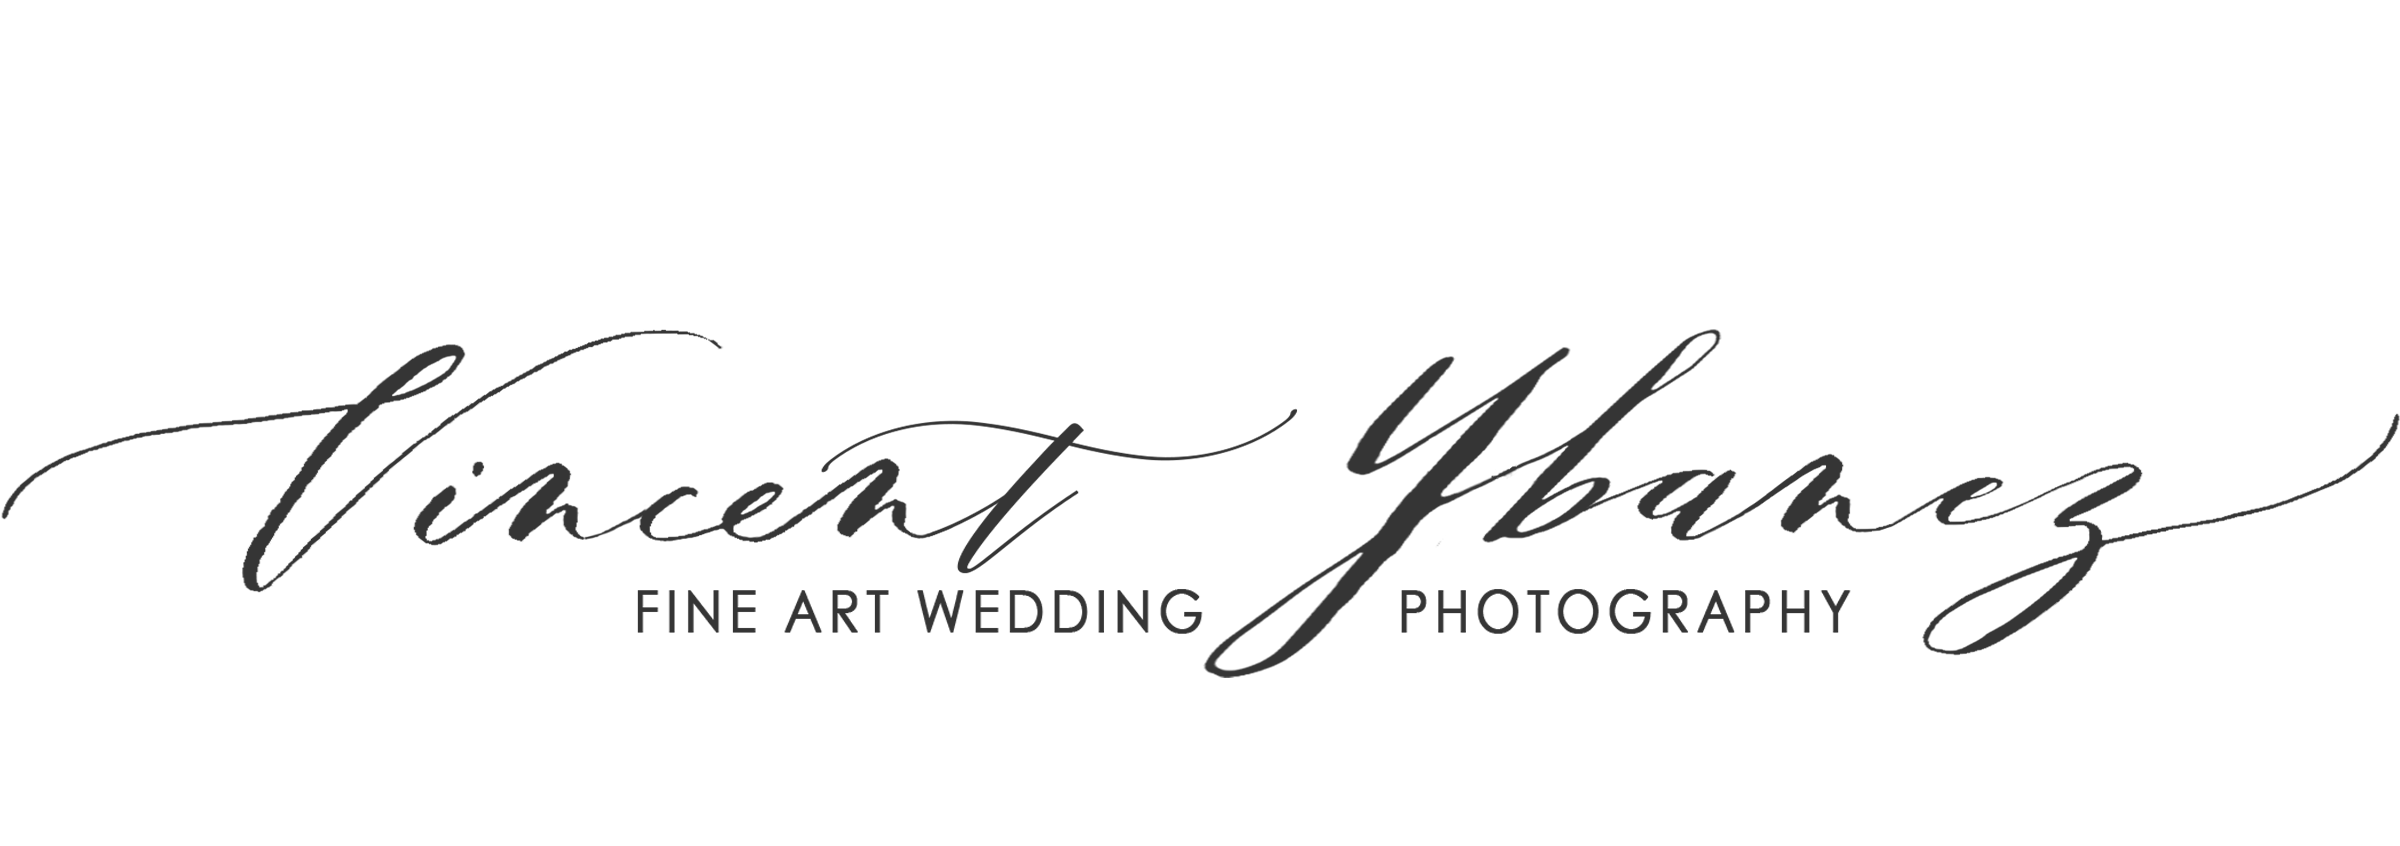 Edmonton Wedding Photographer | Vincent Ybanez Photo